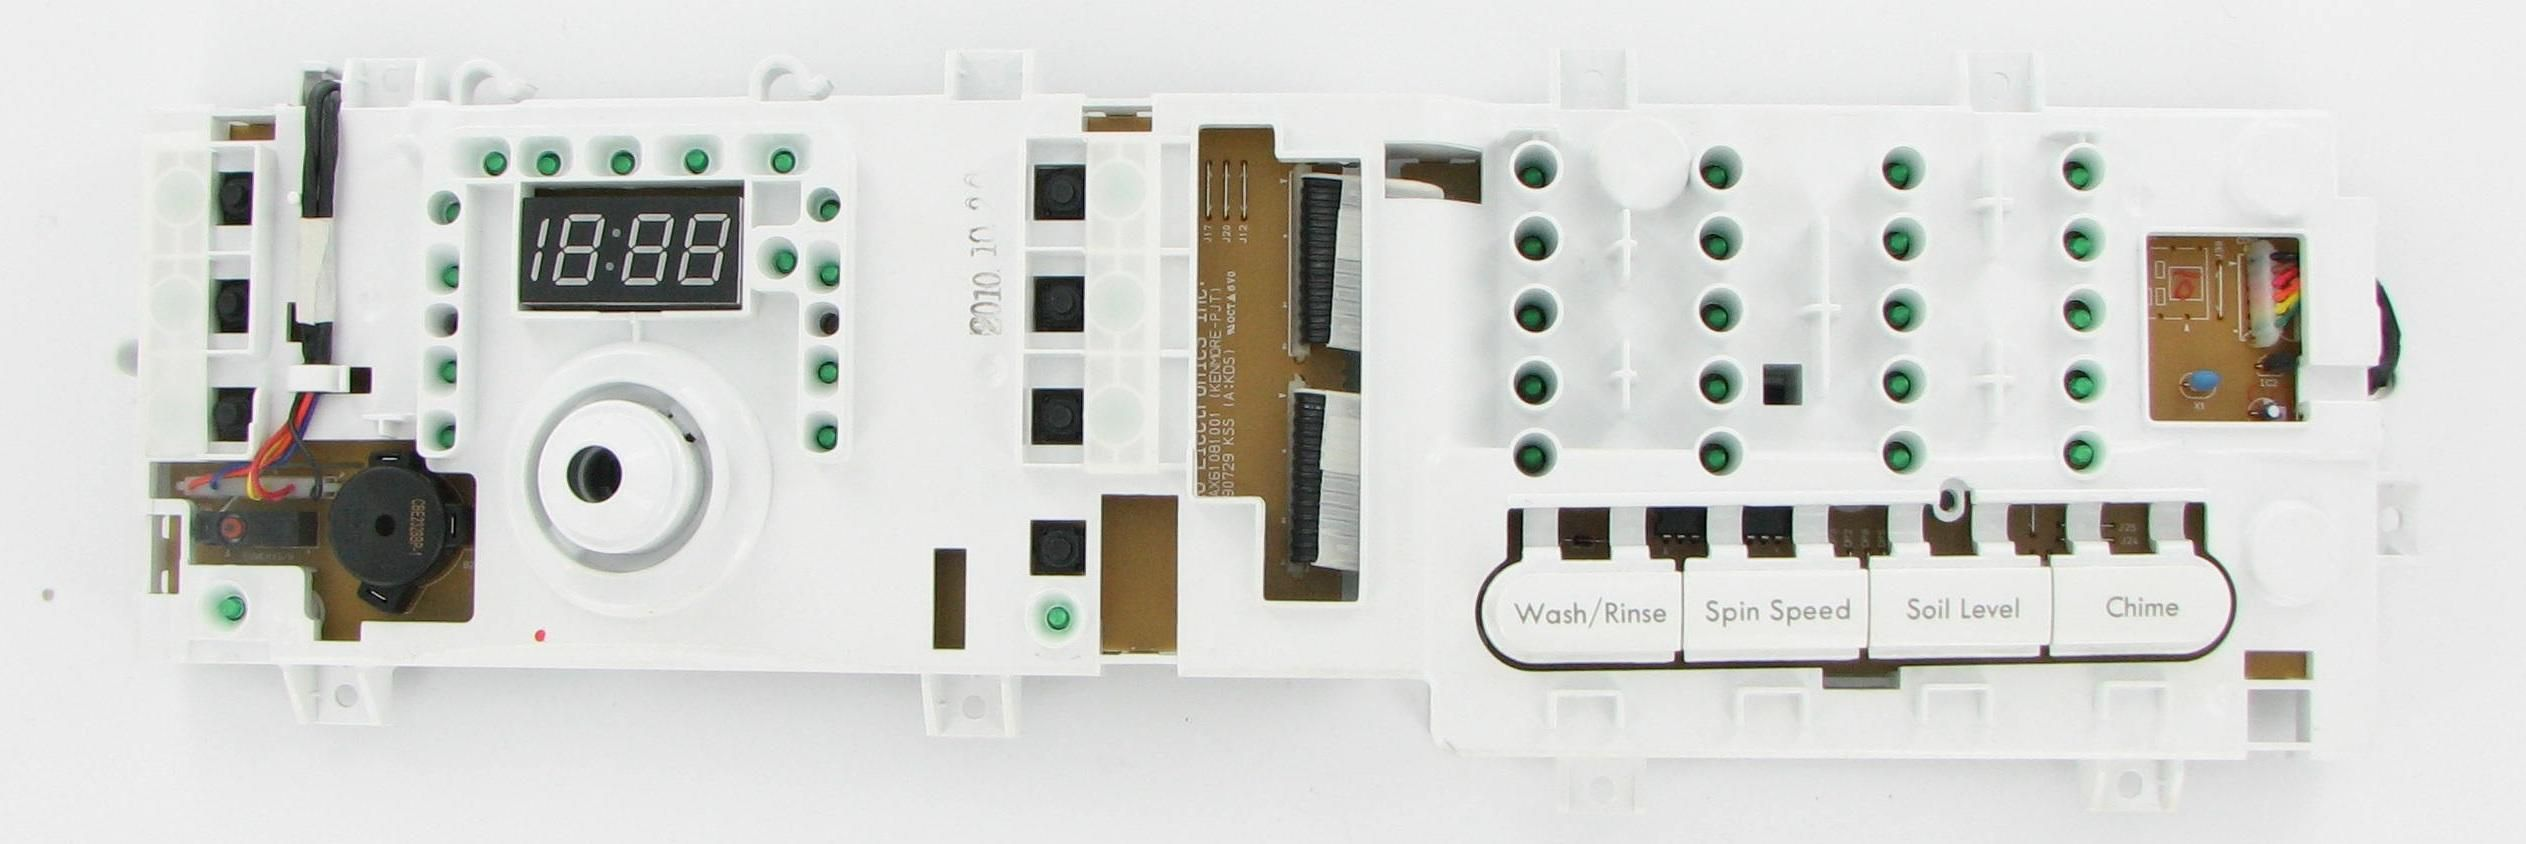 Lg ebr laundry washer pcb assembly board